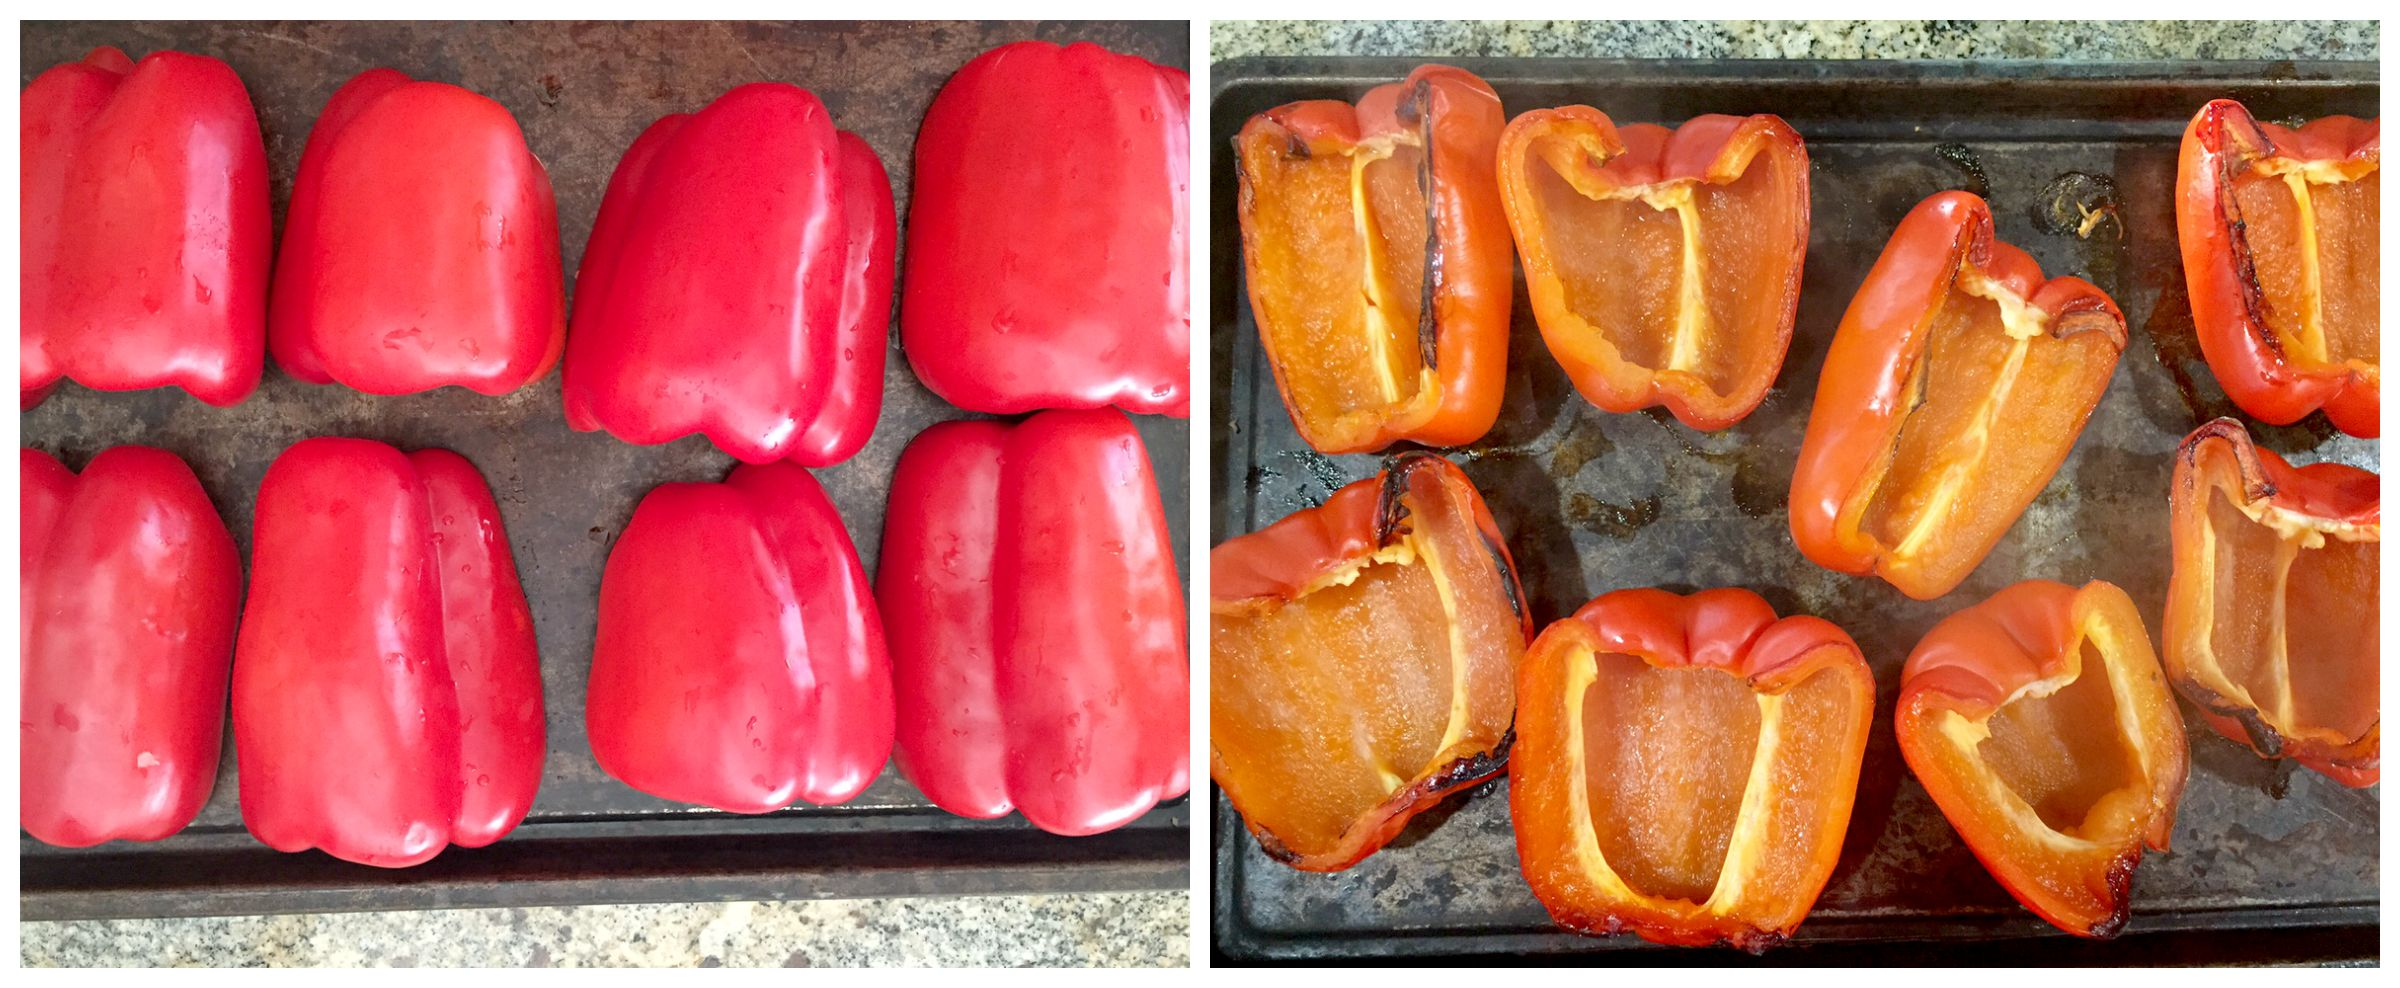 Stuffed Peppers Collage 2